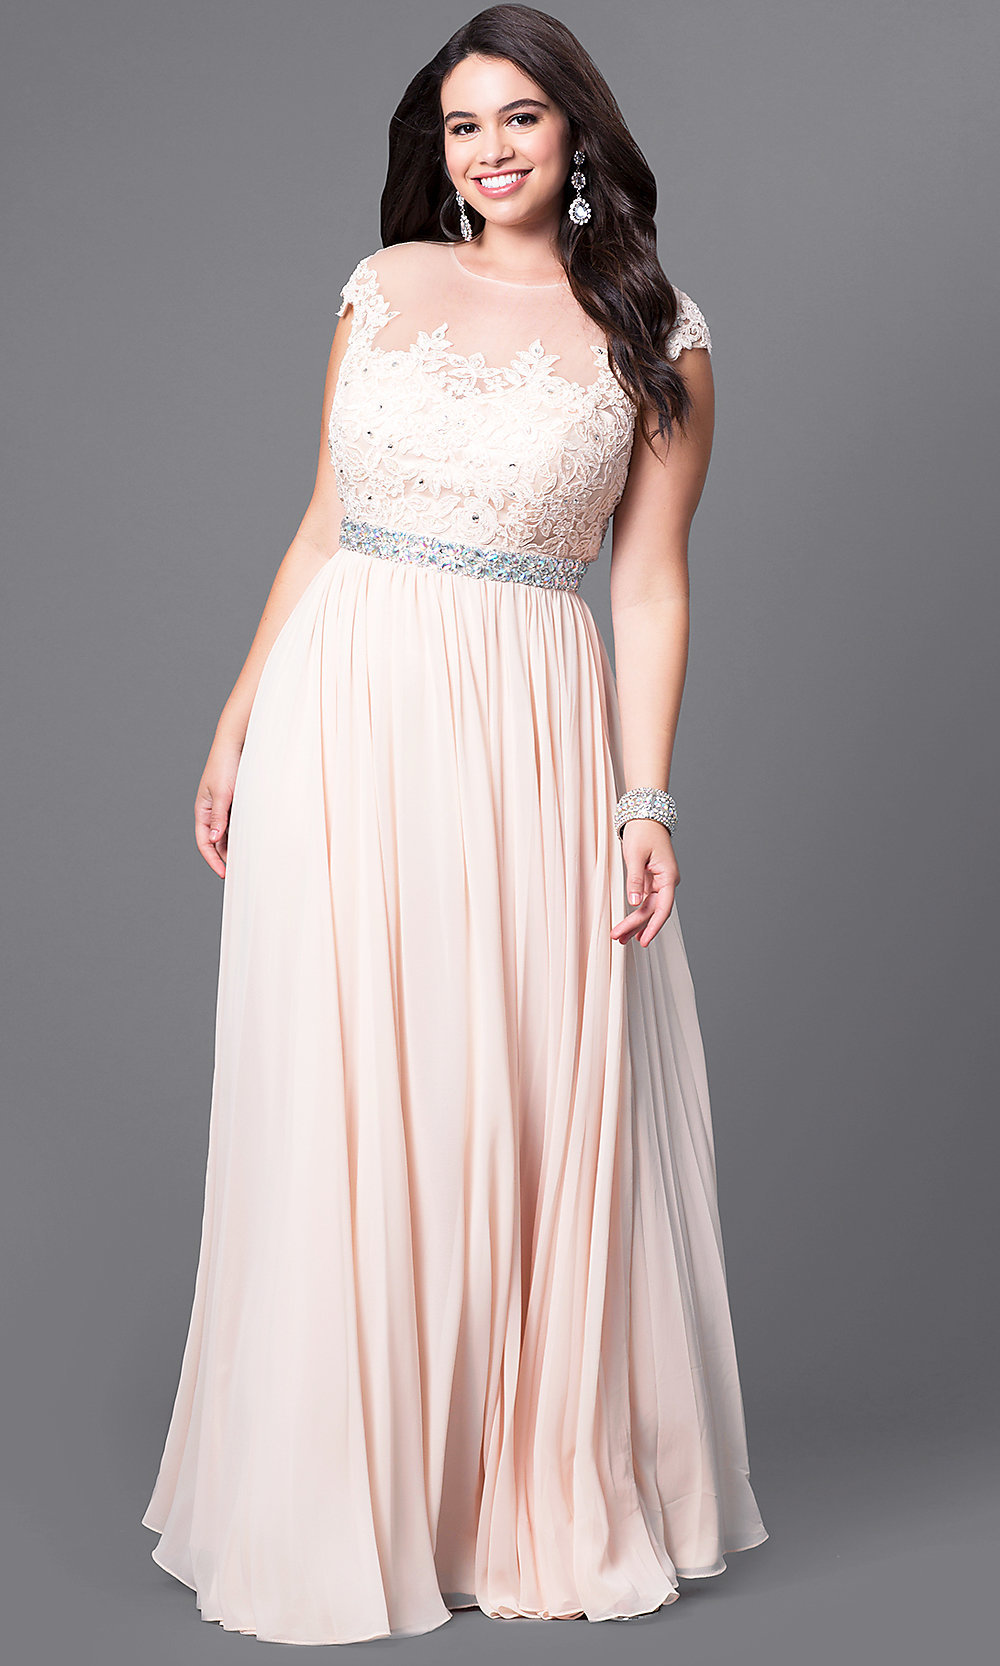 Plus-Size Formal Dresses, Short Prom Gowns- PromGirl